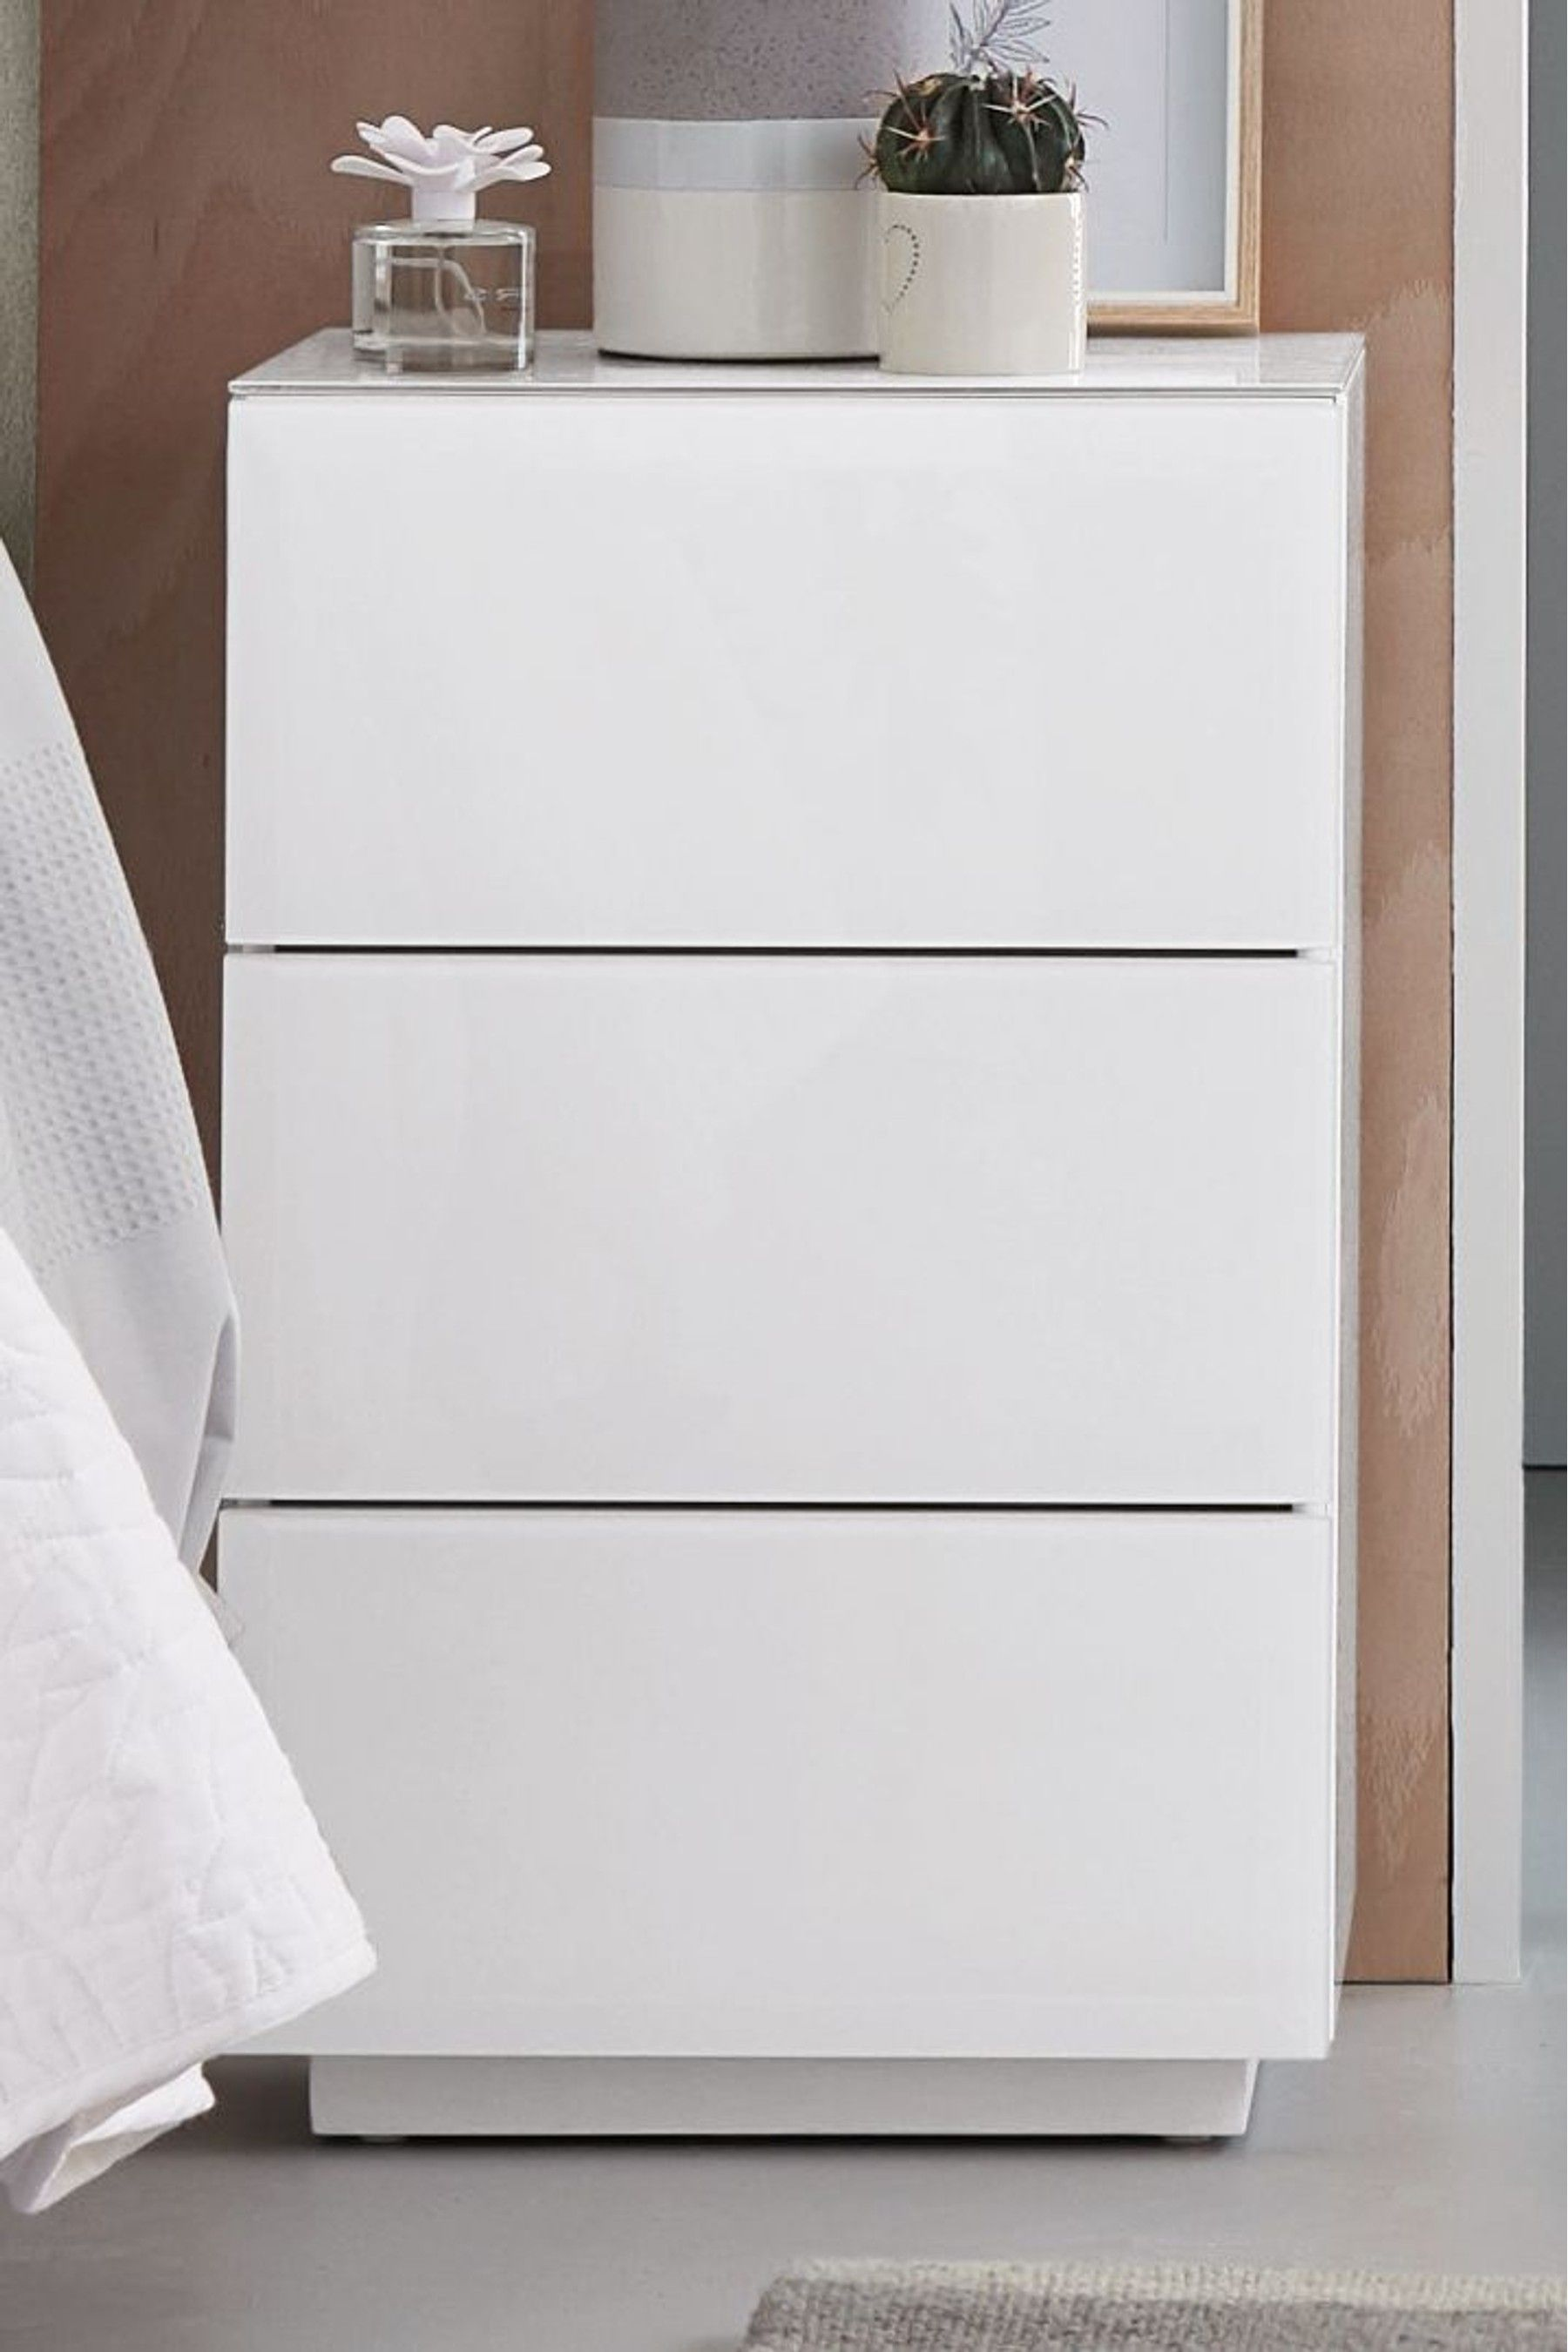 Next Sloane 3 Drawer Bedside Table White In 2020 White Bedside Table Fitted Bedroom Furniture Bedroom Collections Furniture